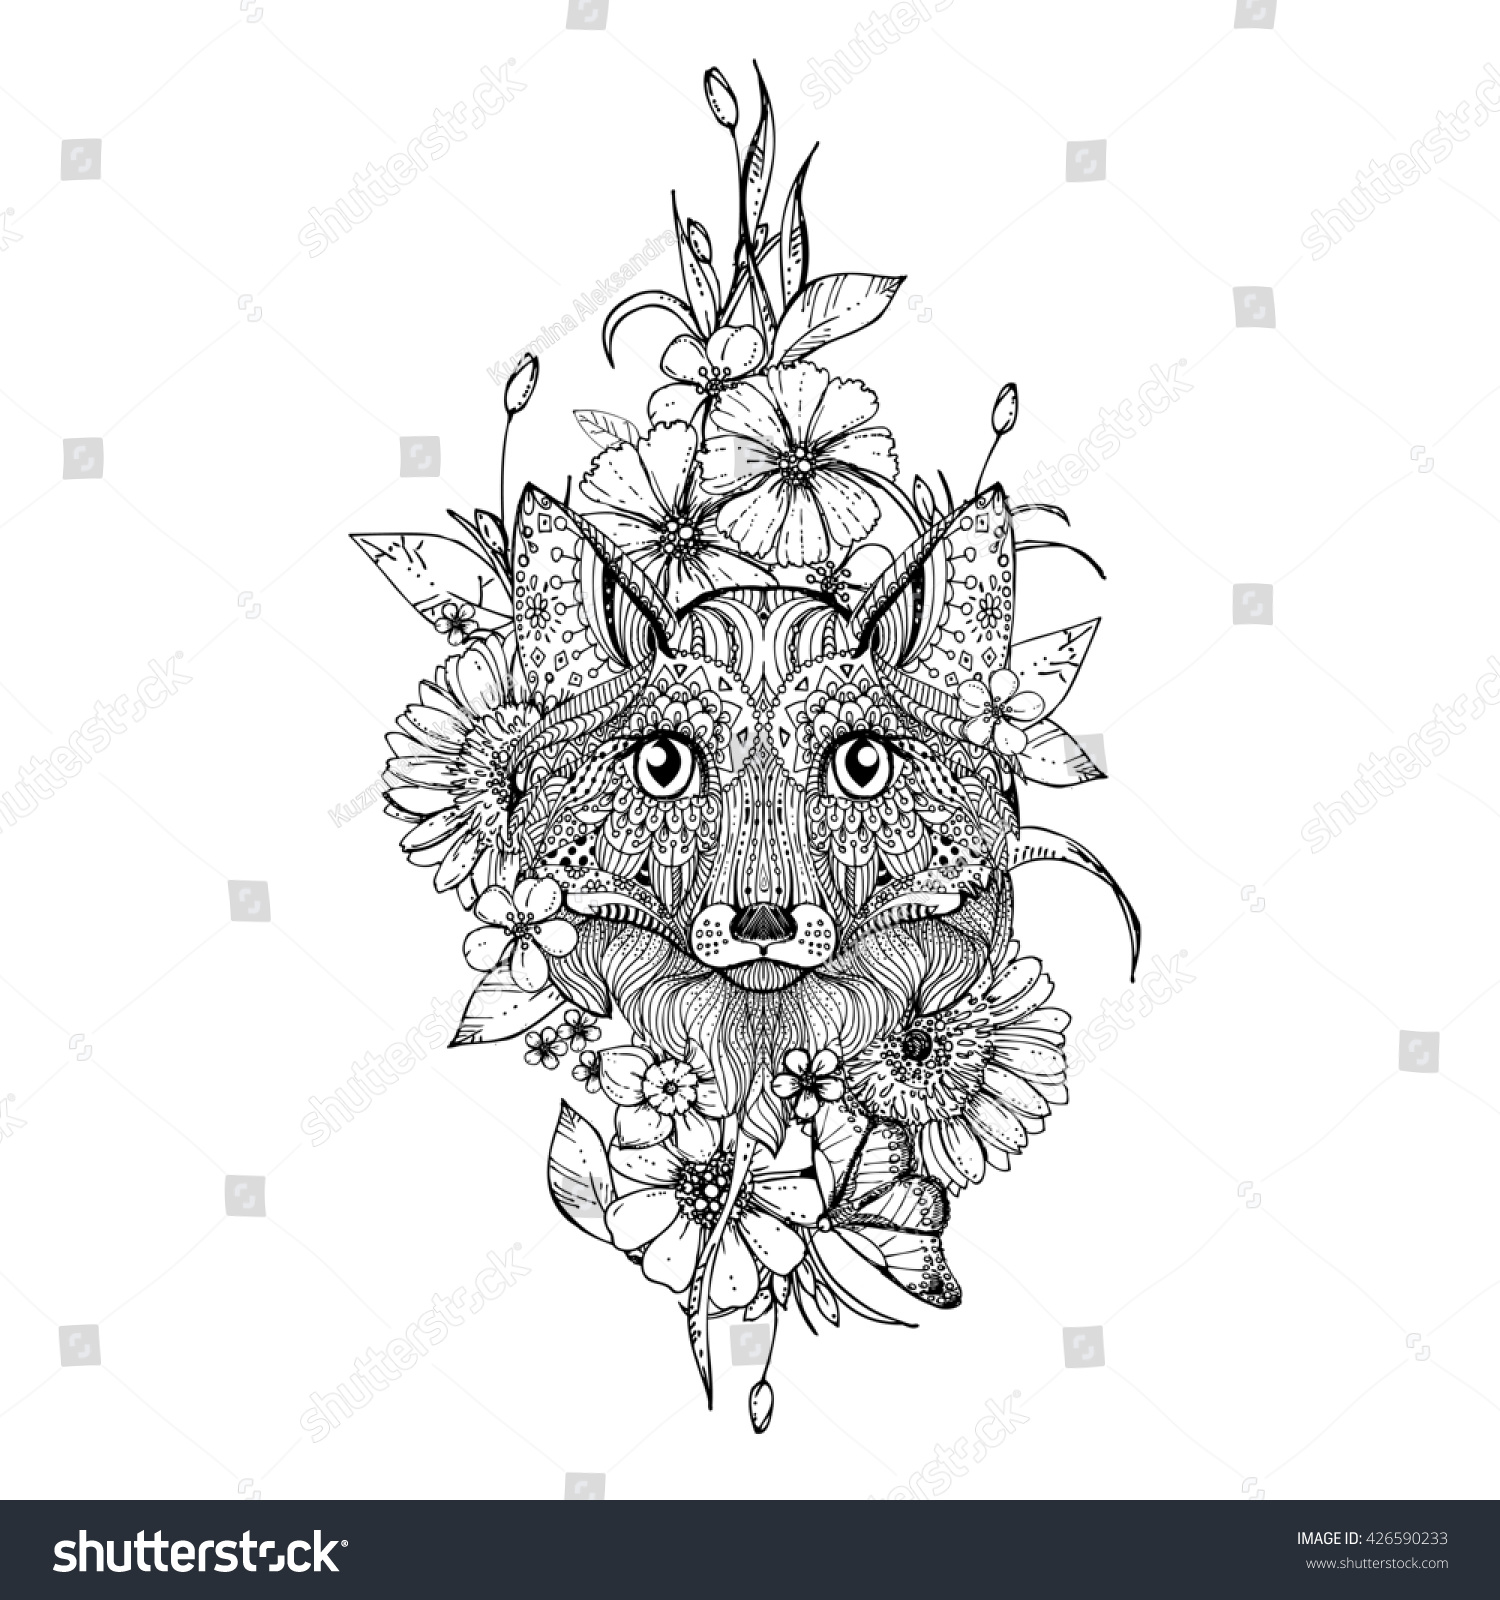 hand drawn ink doodle fox flowers stock illustration 426590233